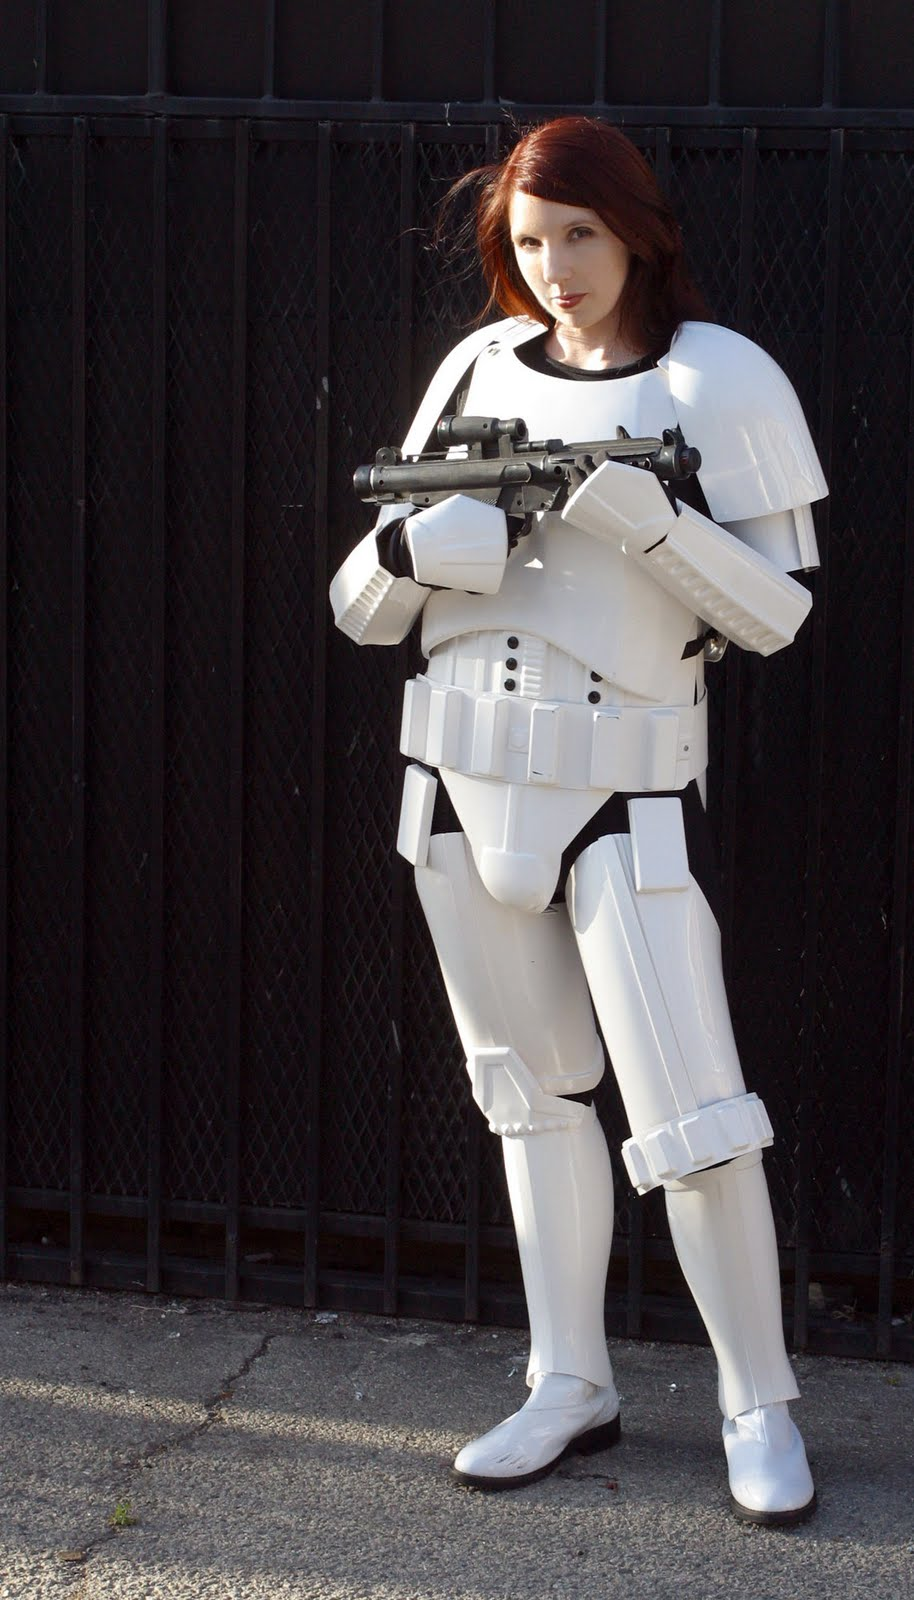 & geek with curves: When Someone Hands you Stormtrooper Armor